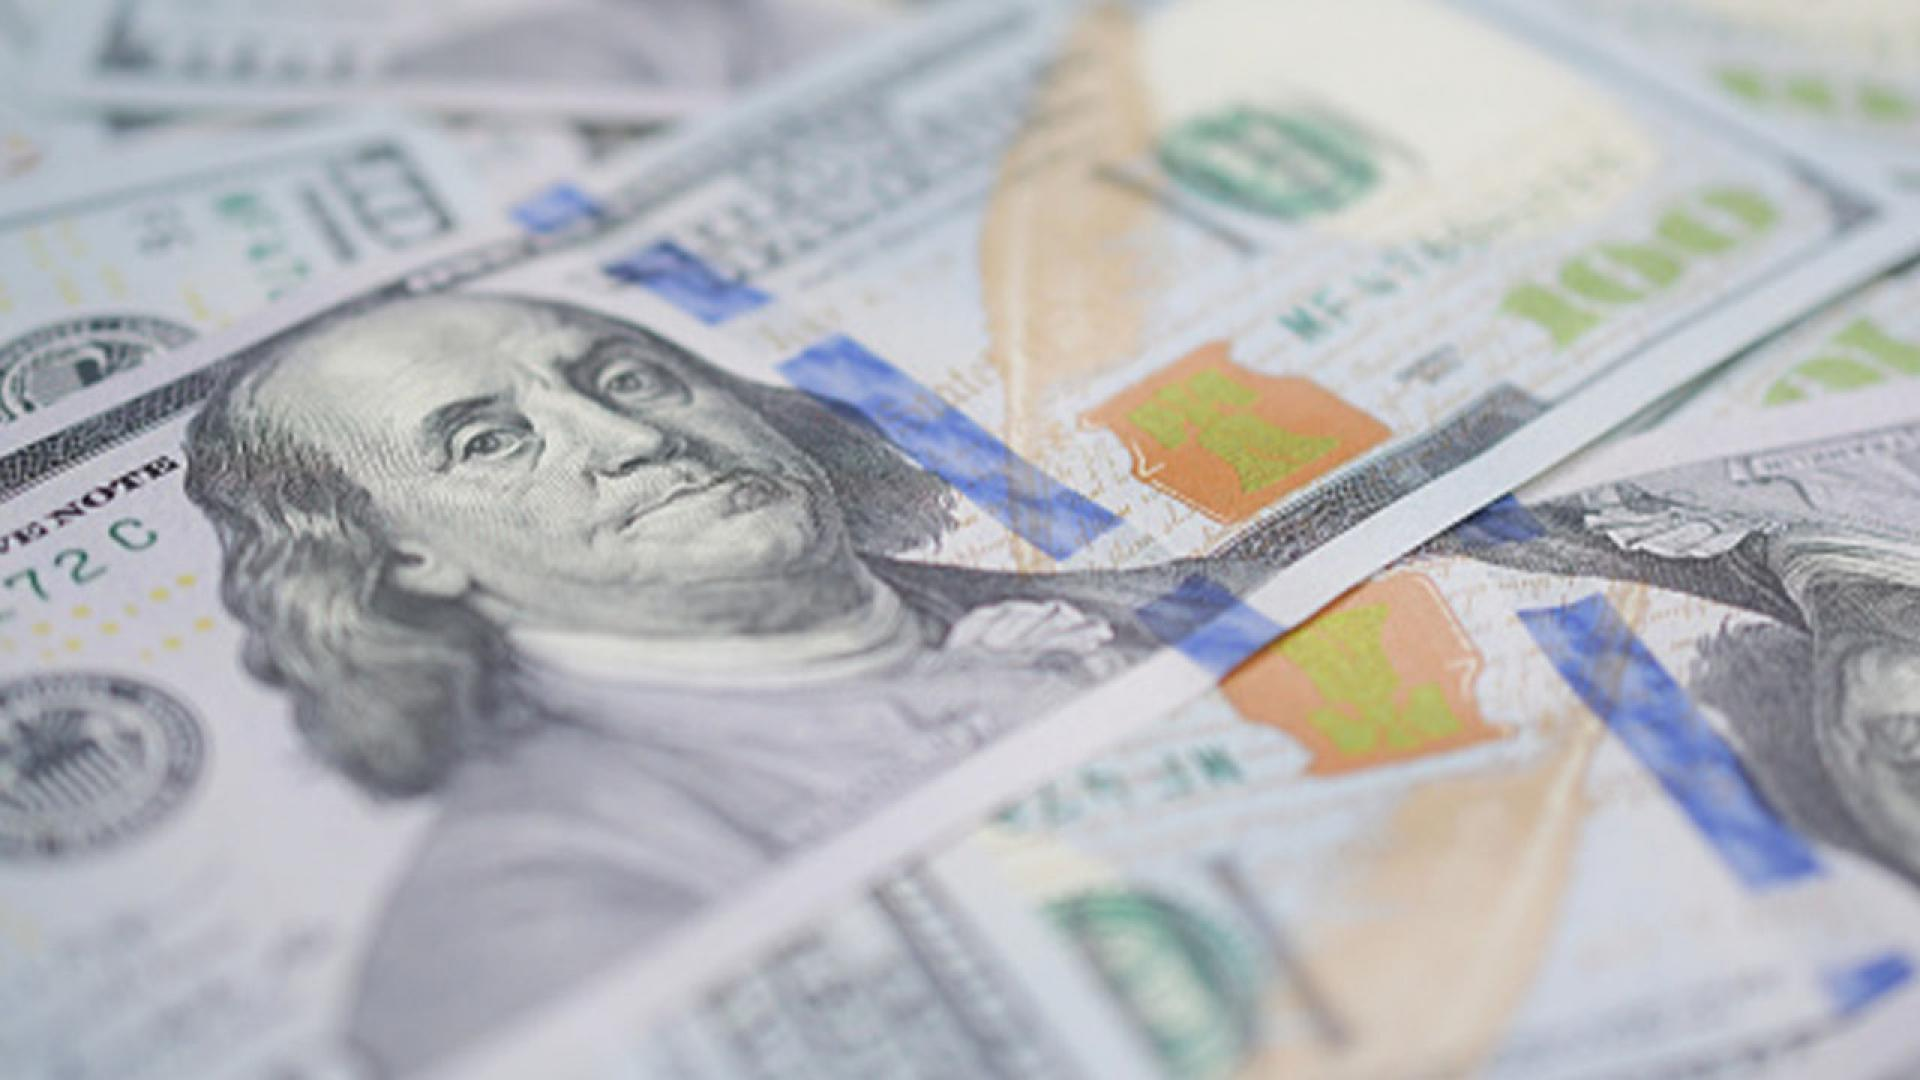 Stock image of U.S. currency